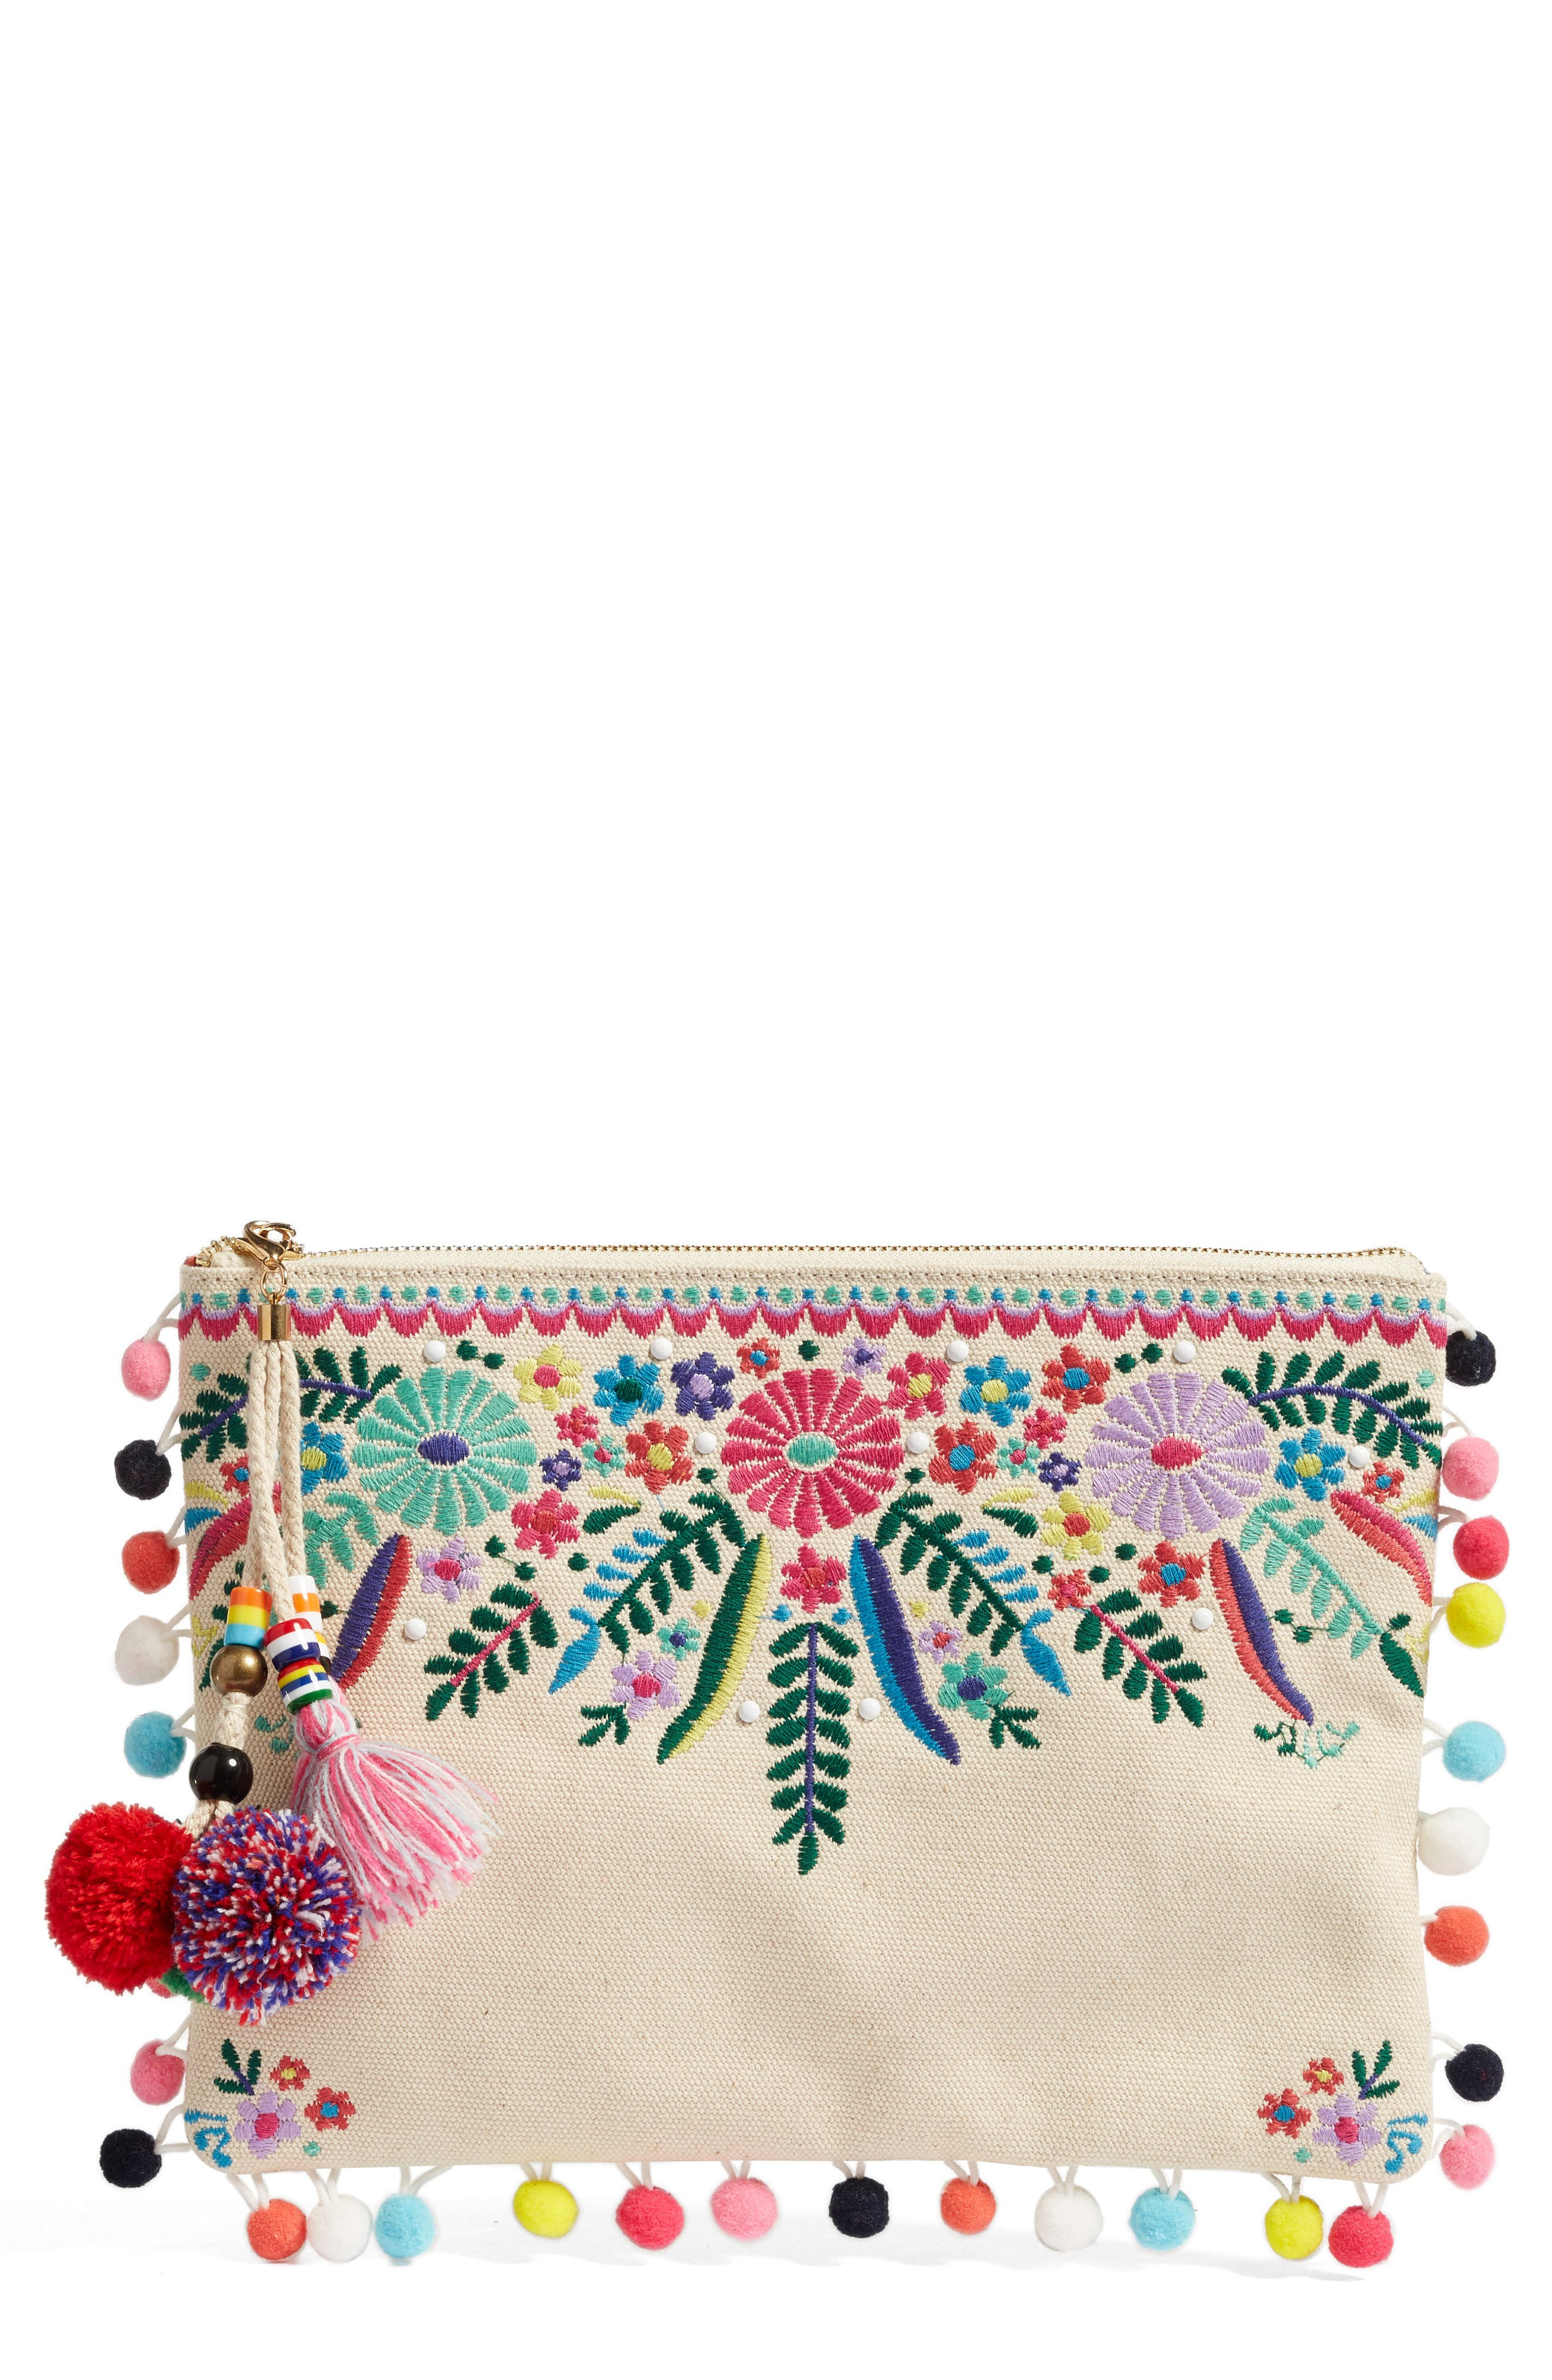 Main Image - Steven by Steve Madden Embroidered Clutch